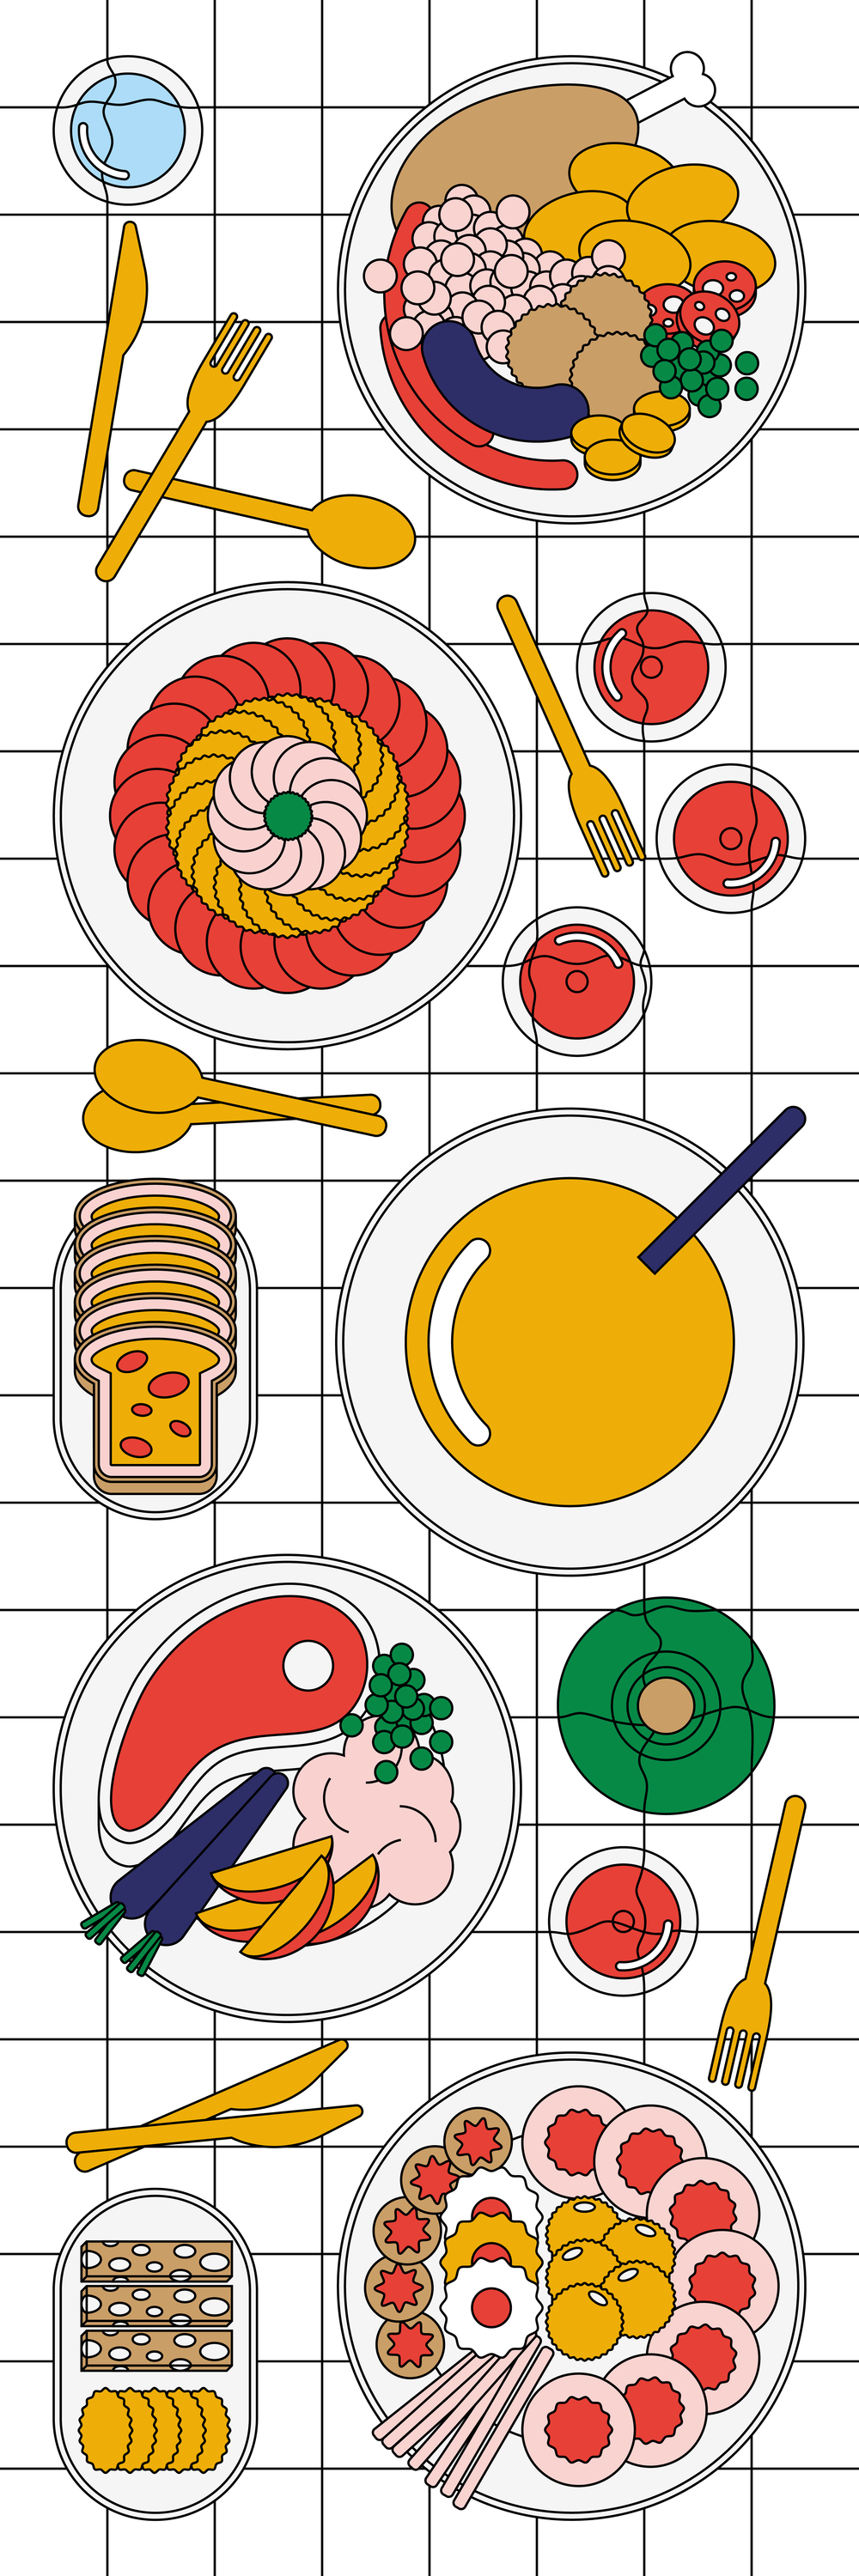 all_i_want_for_christmas_is_food_illustration_01.png